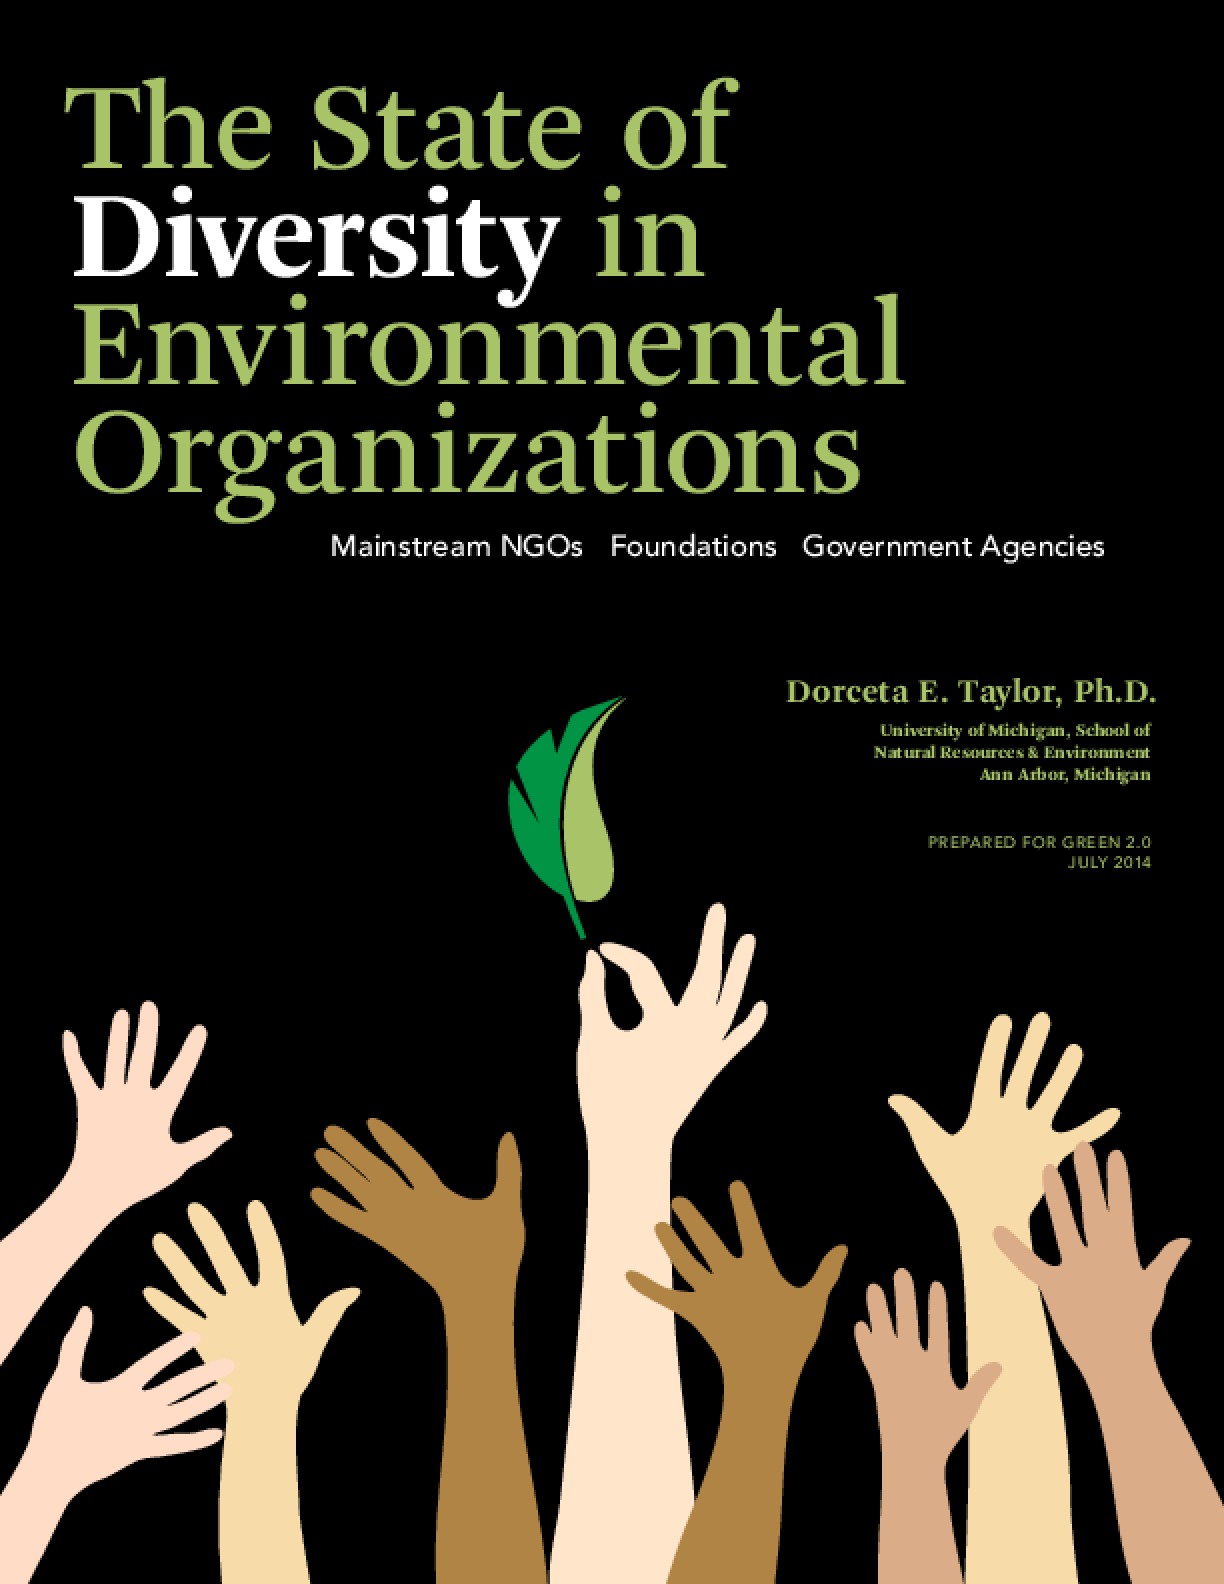 The State of Diversity in Environmental Organizations